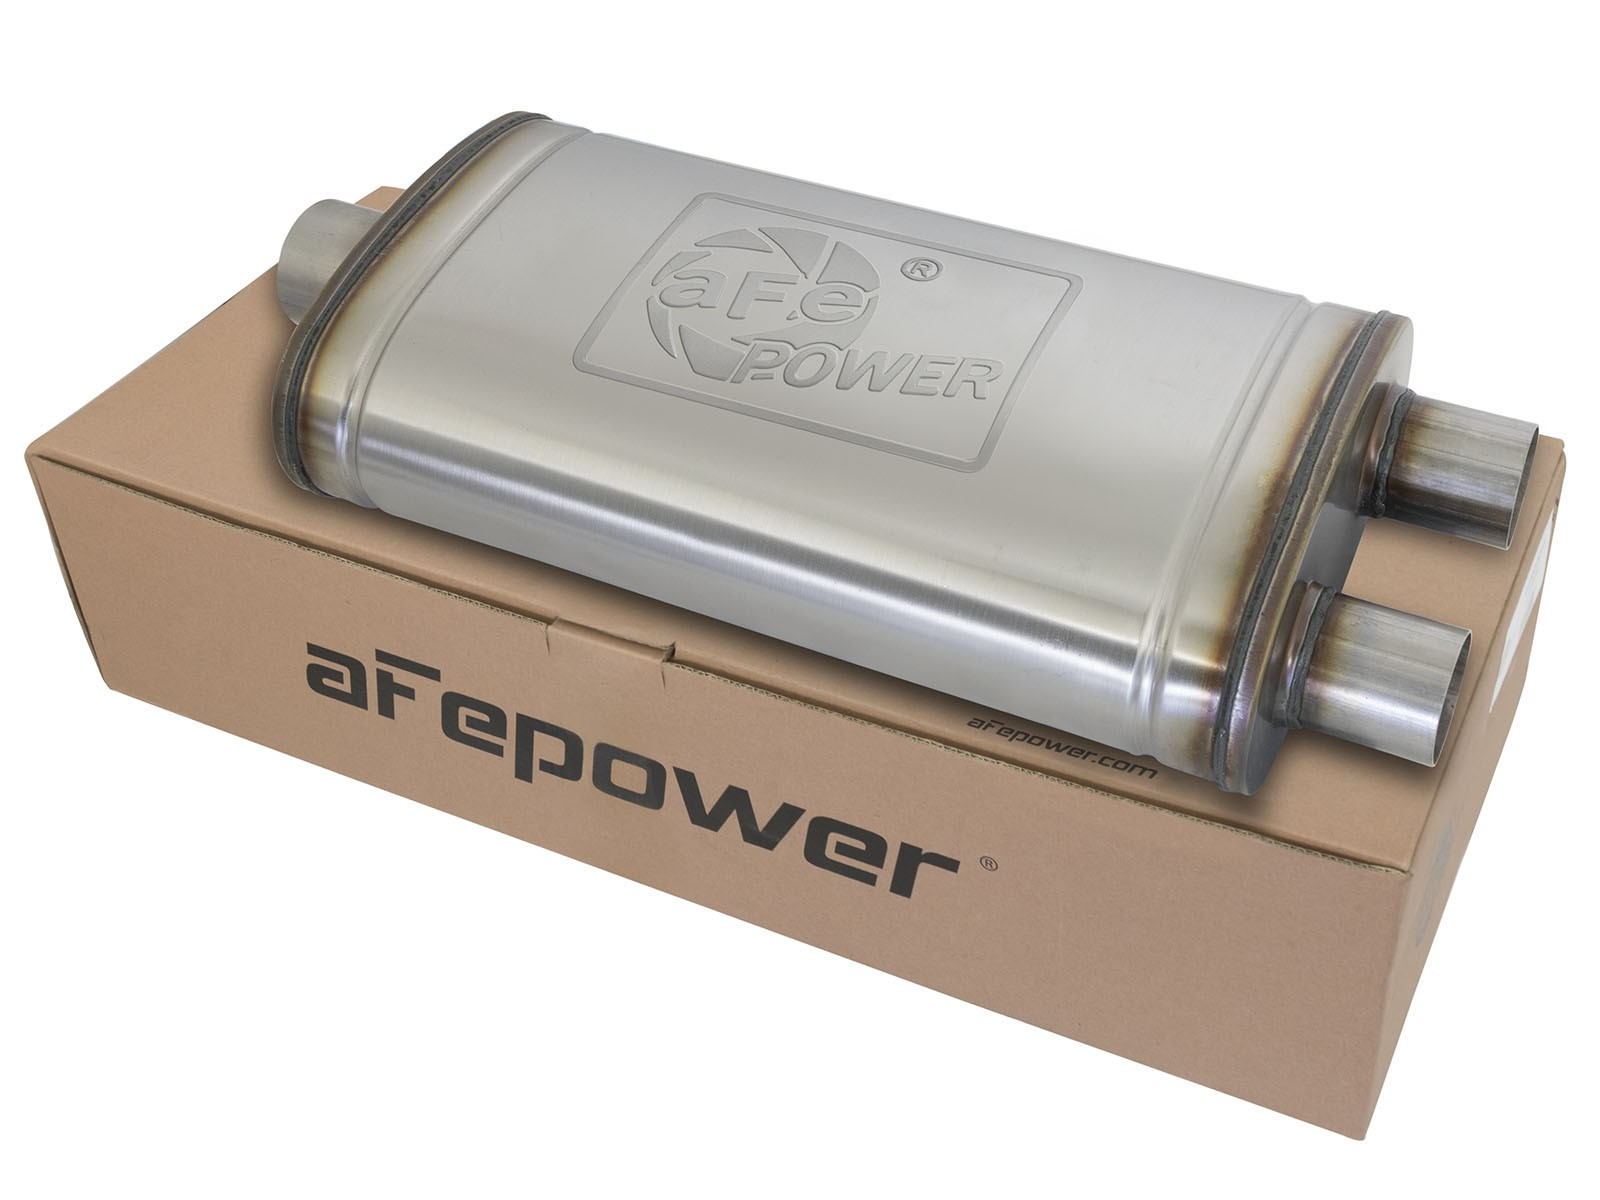 "aFe POWER 49M00014 MACH Force-Xp 3"" to 2.5"" 409 Stainless Steel Muffler"